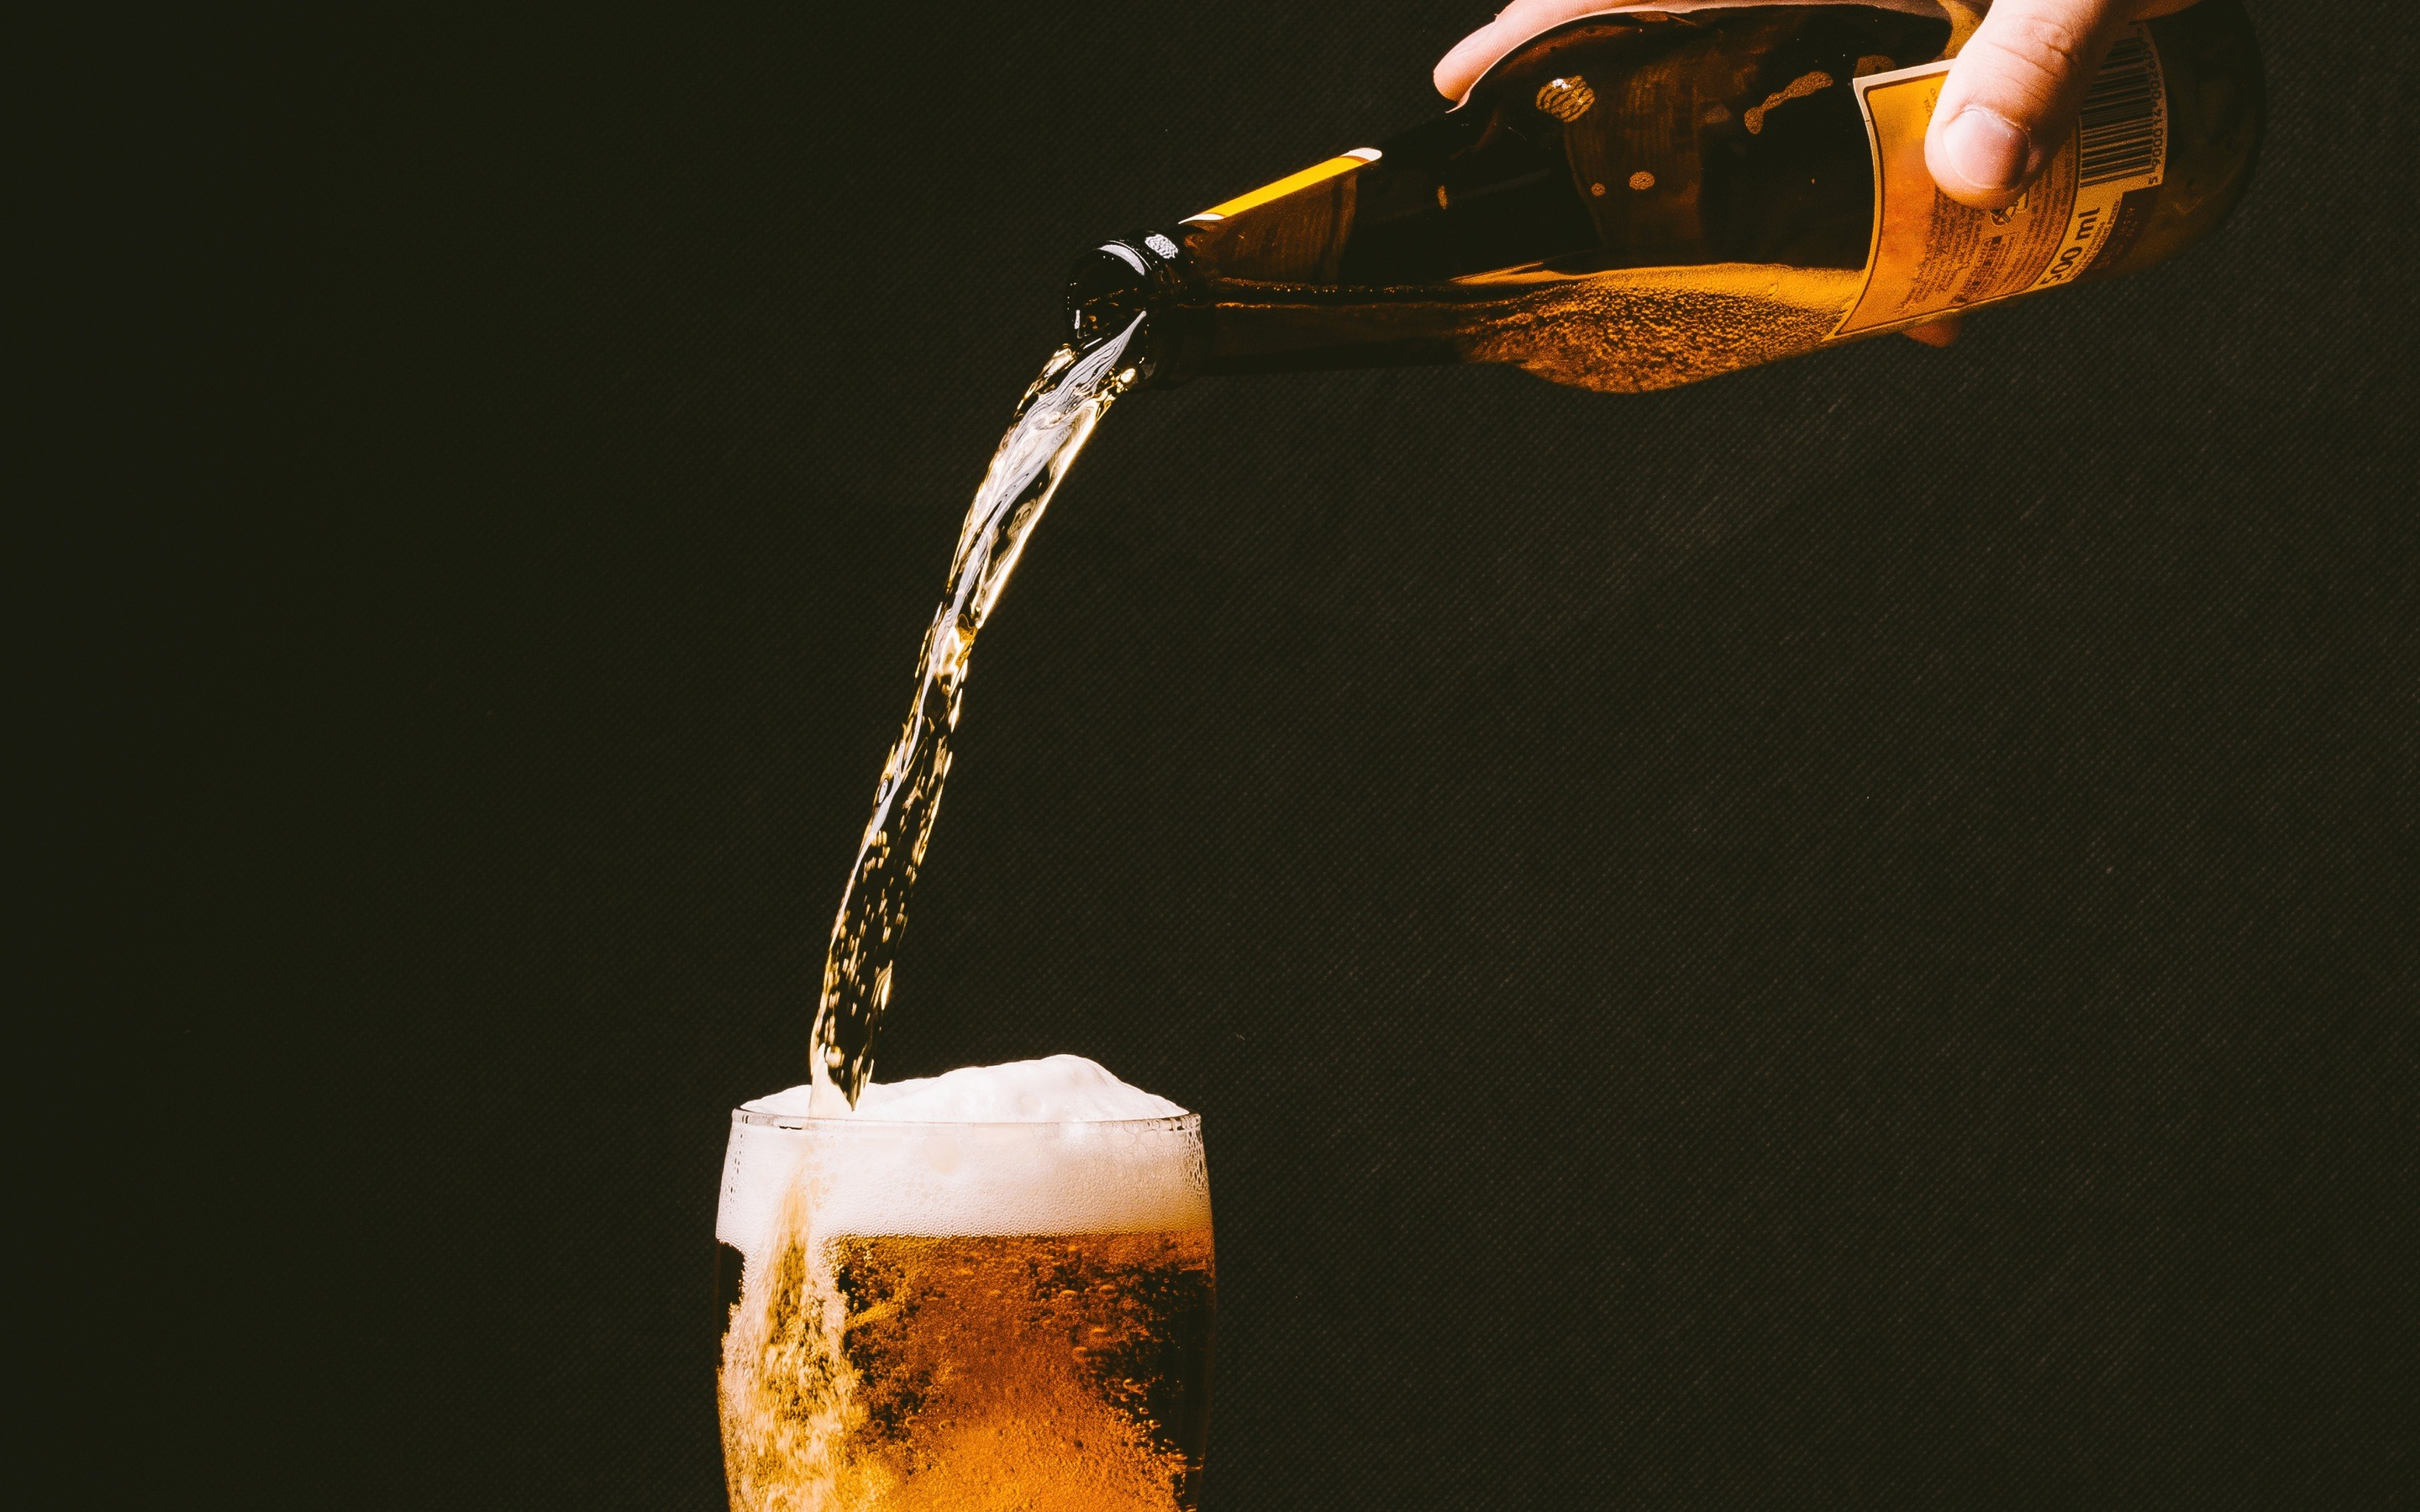 Res: 2880x1800, Drink, cold, hand, alcohol, bar, glass, beer, bottle,